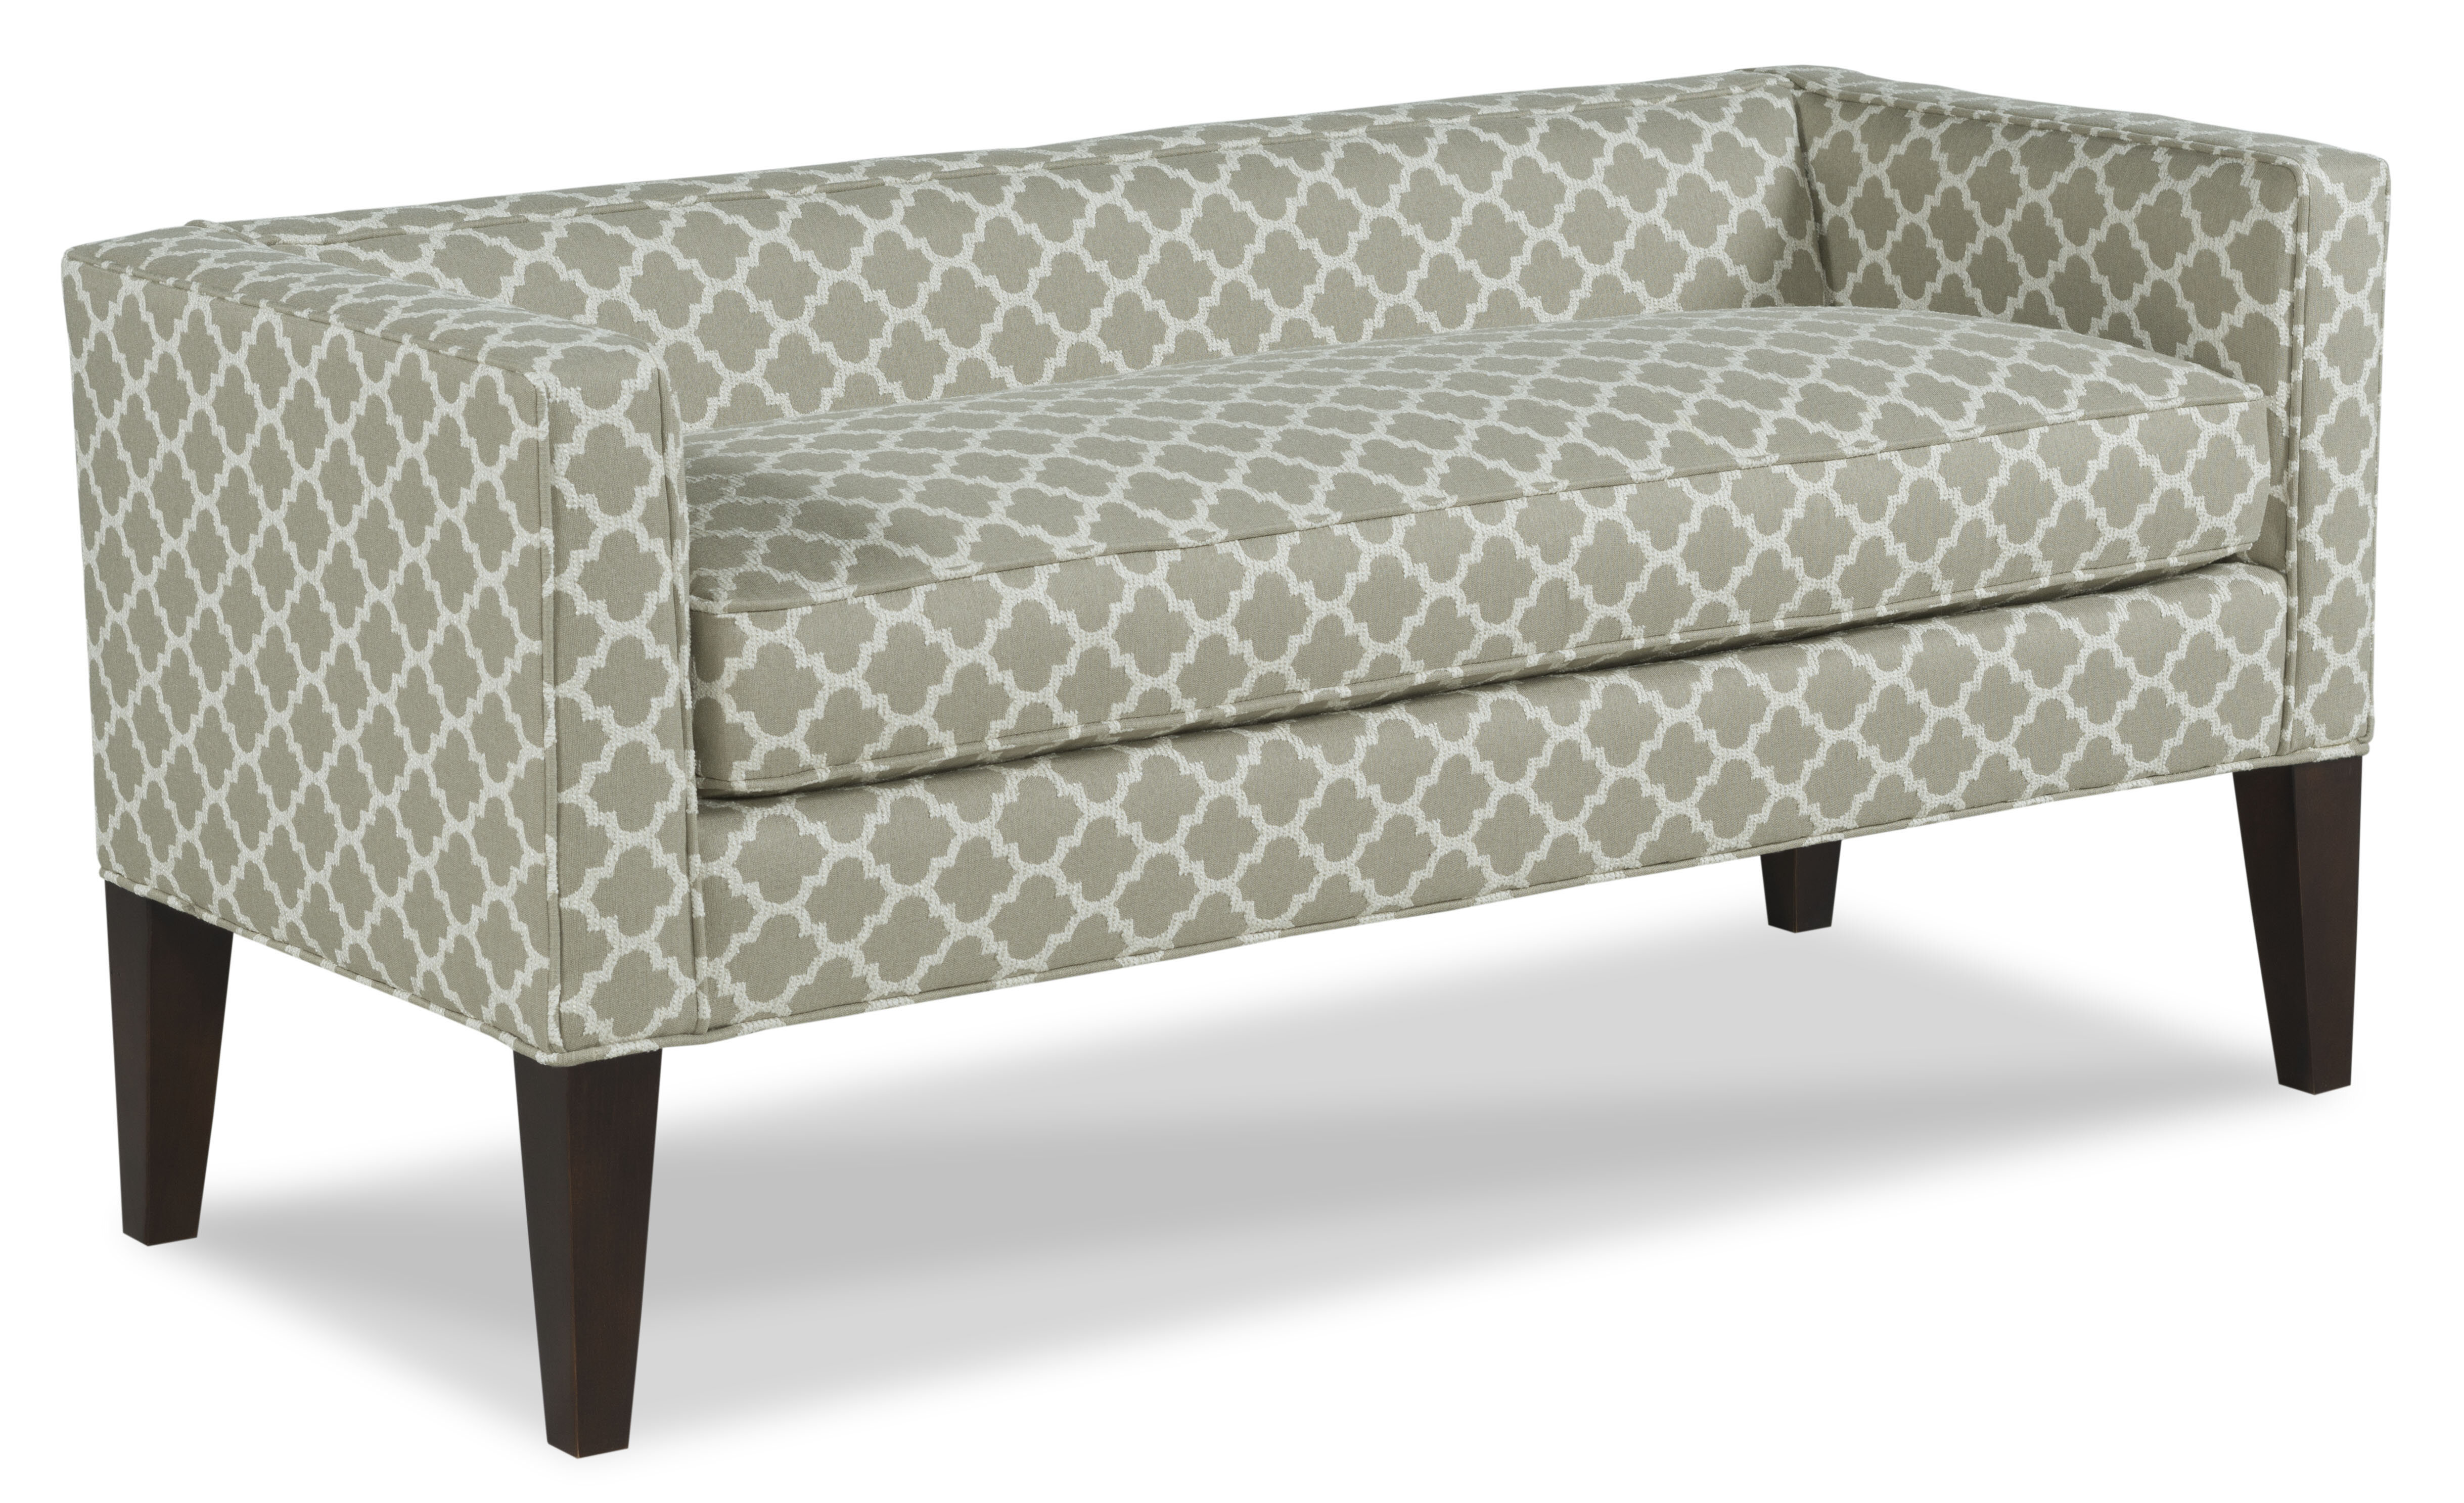 Picture of: Fairfield Chair Beacon Upholstered Bench Perigold